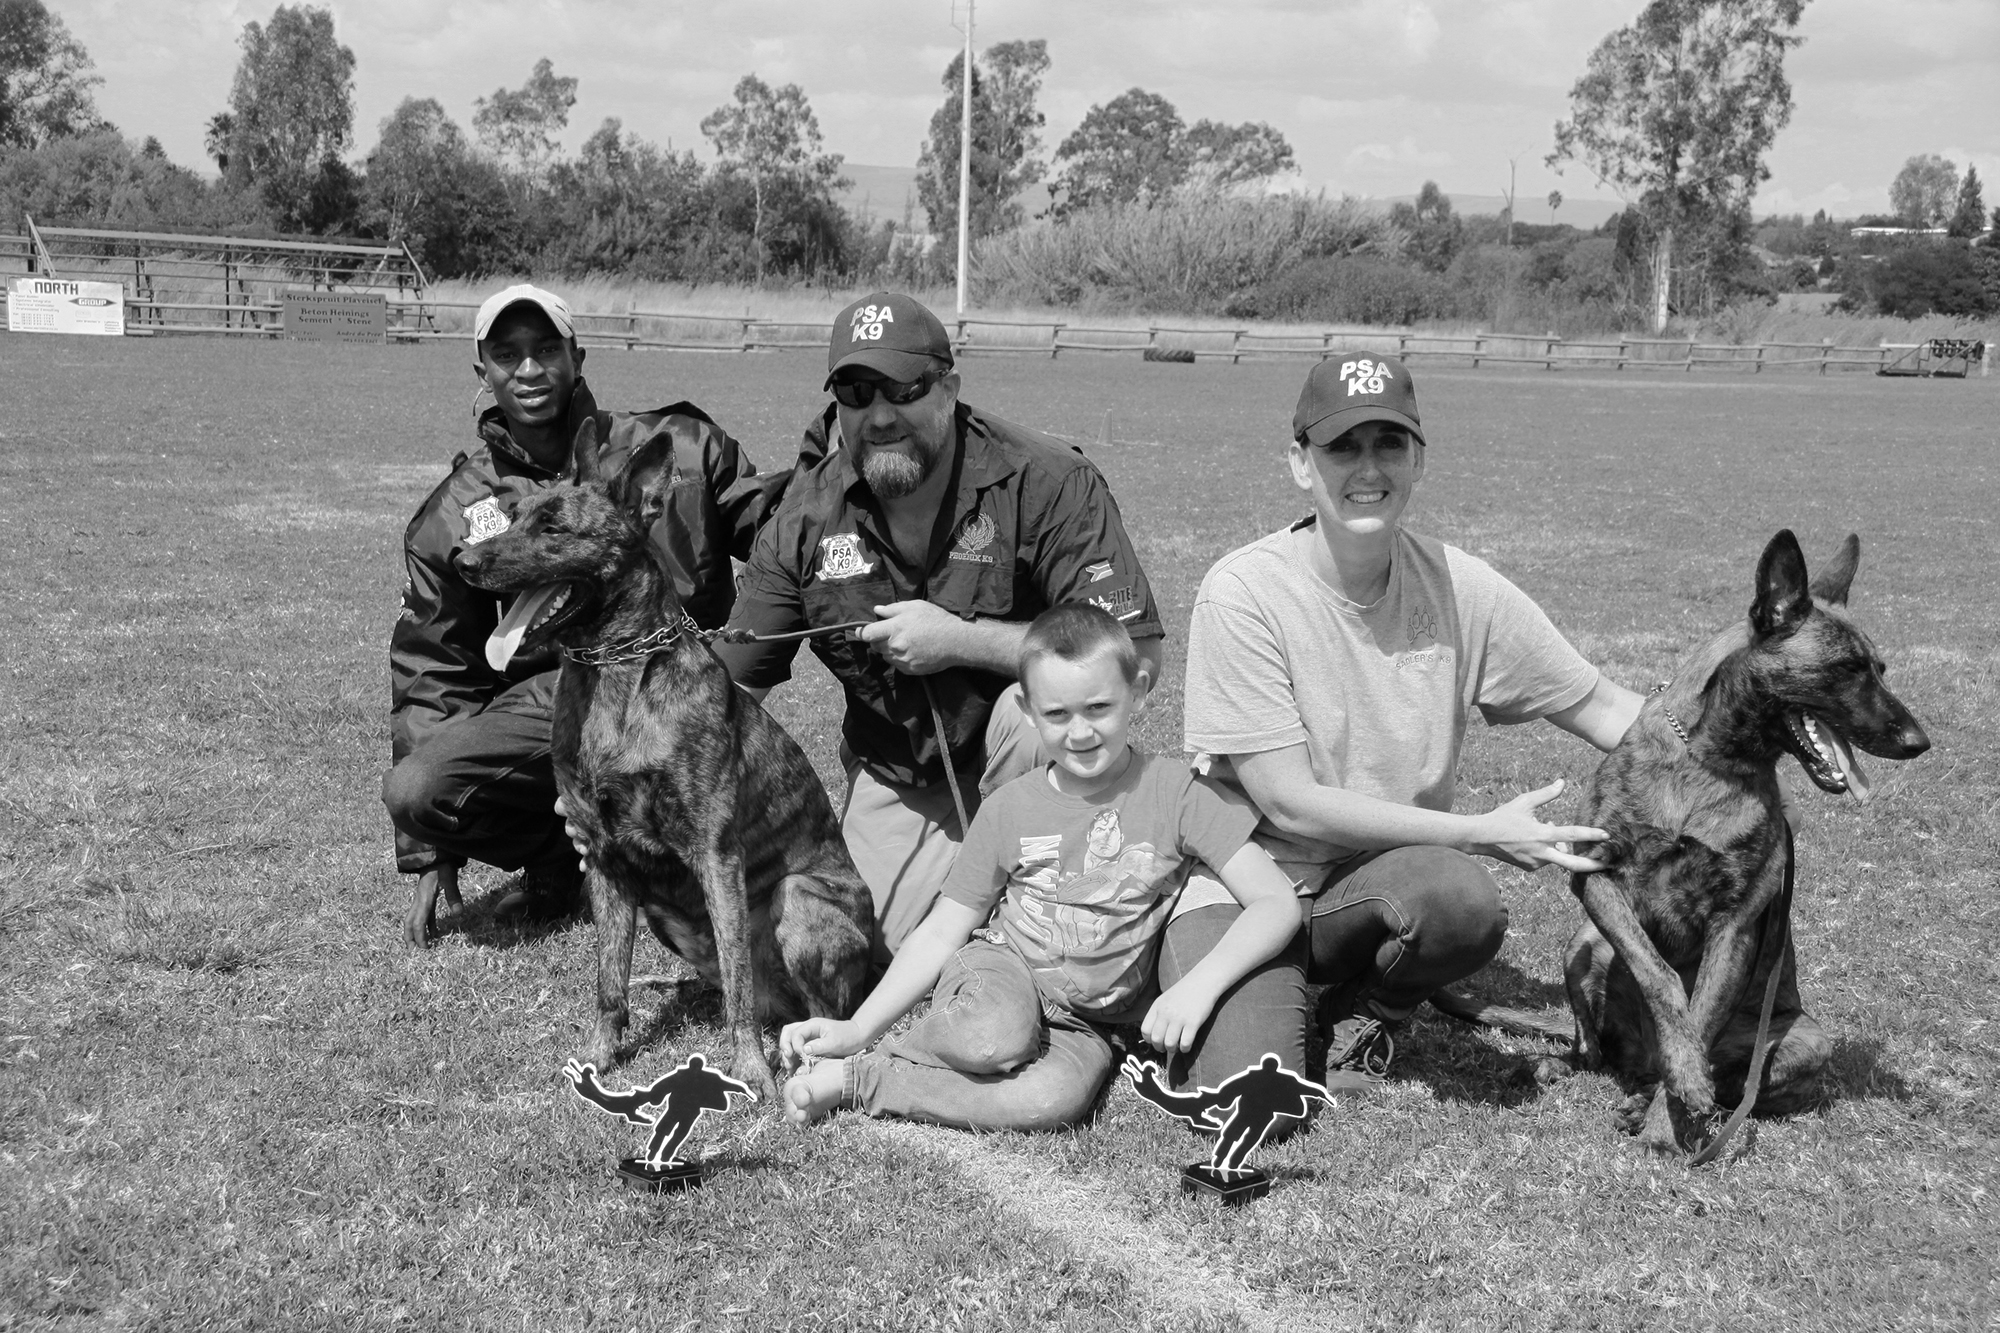 Johannesburg, South Africa - Working dogs, personal protection, detection, tracking, protection, green dogs, anti- poaching and even sports dogs